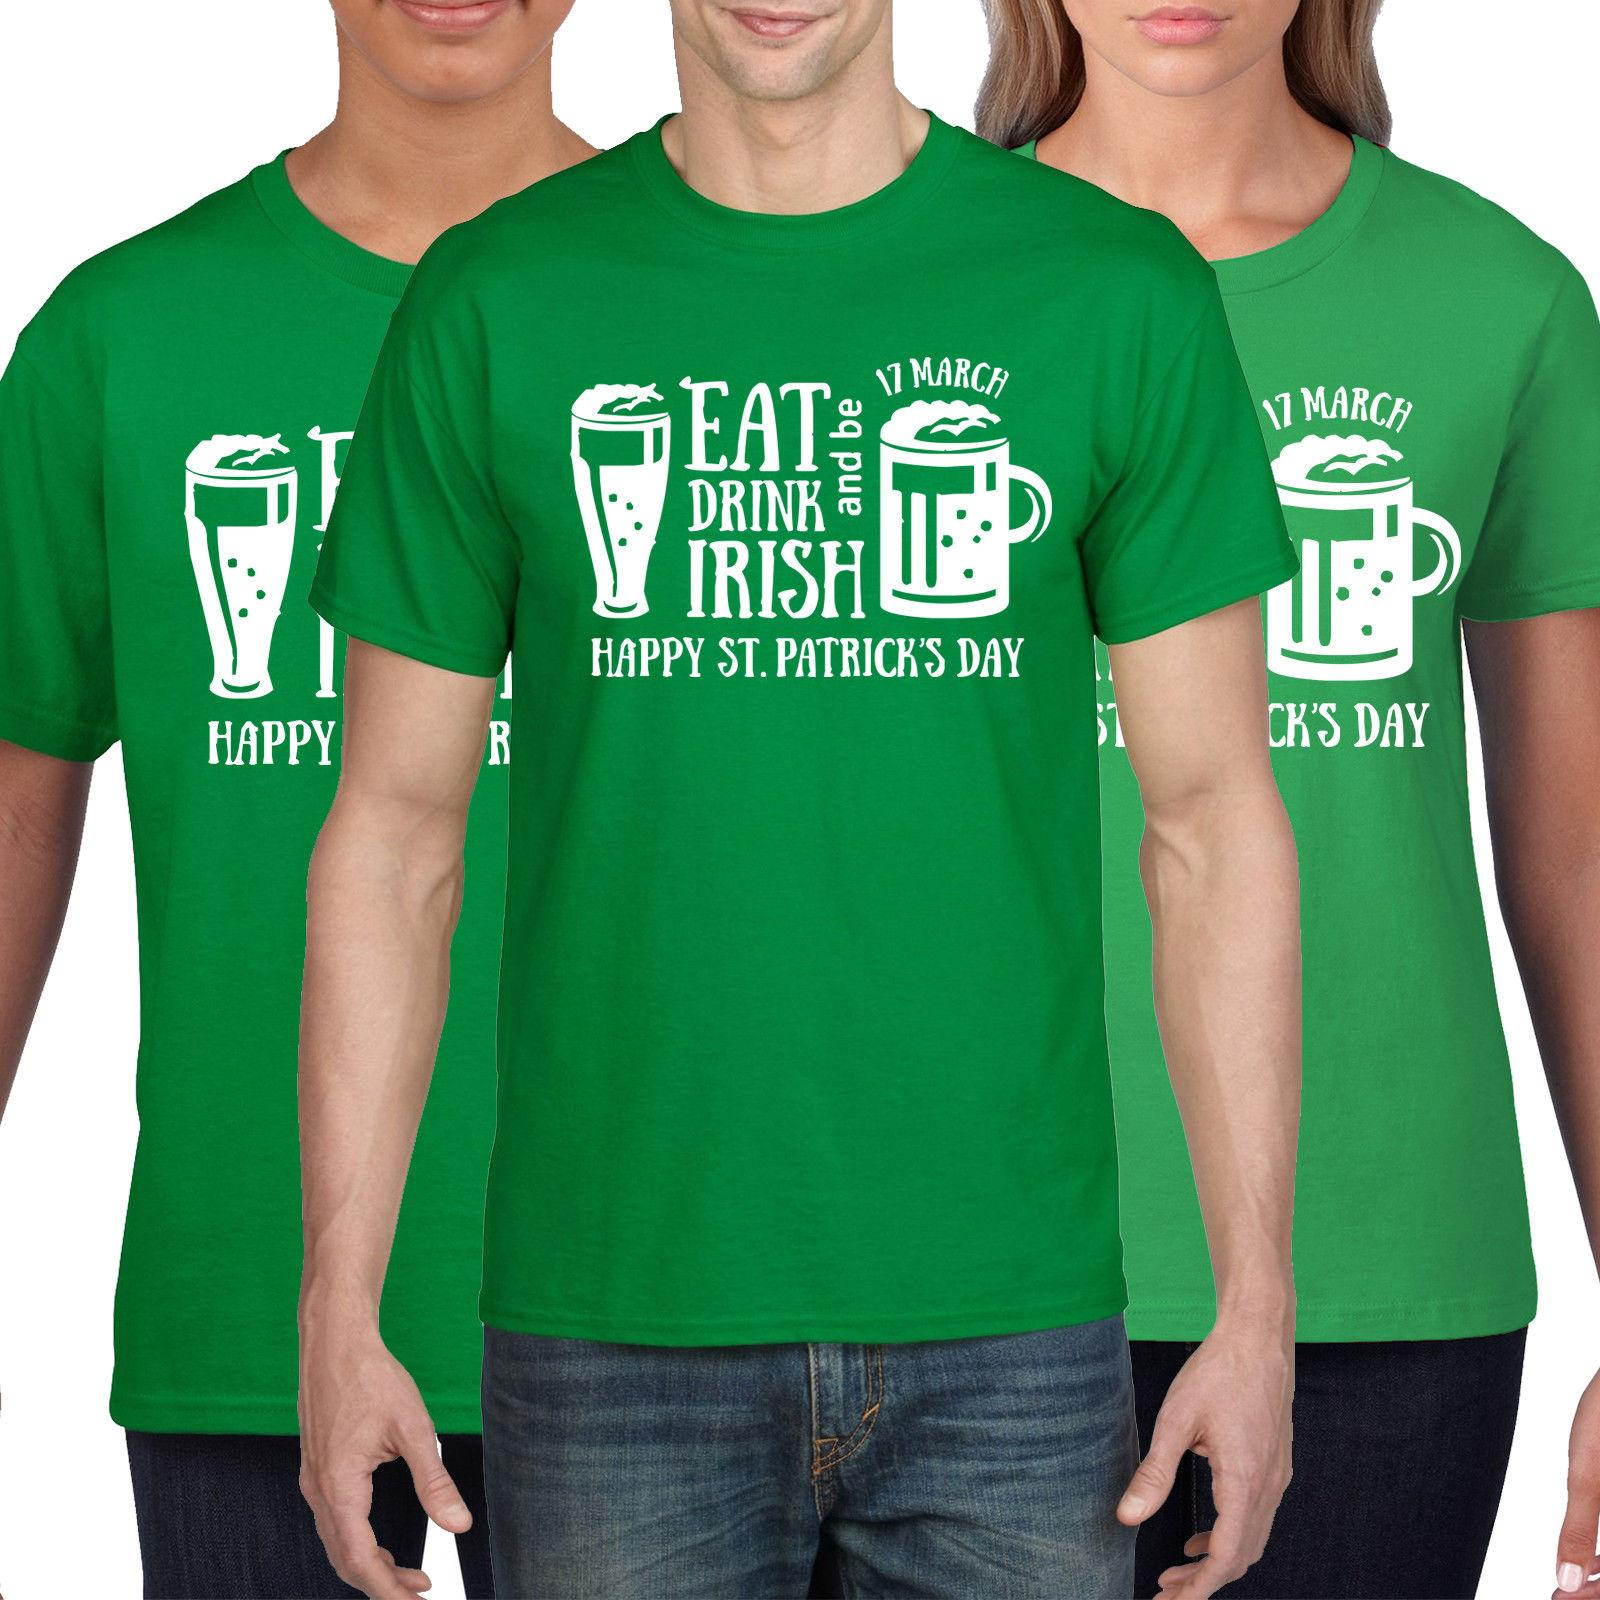 80917f2be Eat Drink & Irish Green T Shirt St Patricks Day TShirt Ireland T Shirt Flag  P35 Funny Unisex Casual Top Shirt Art T Shirts The Who T Shirt From ...